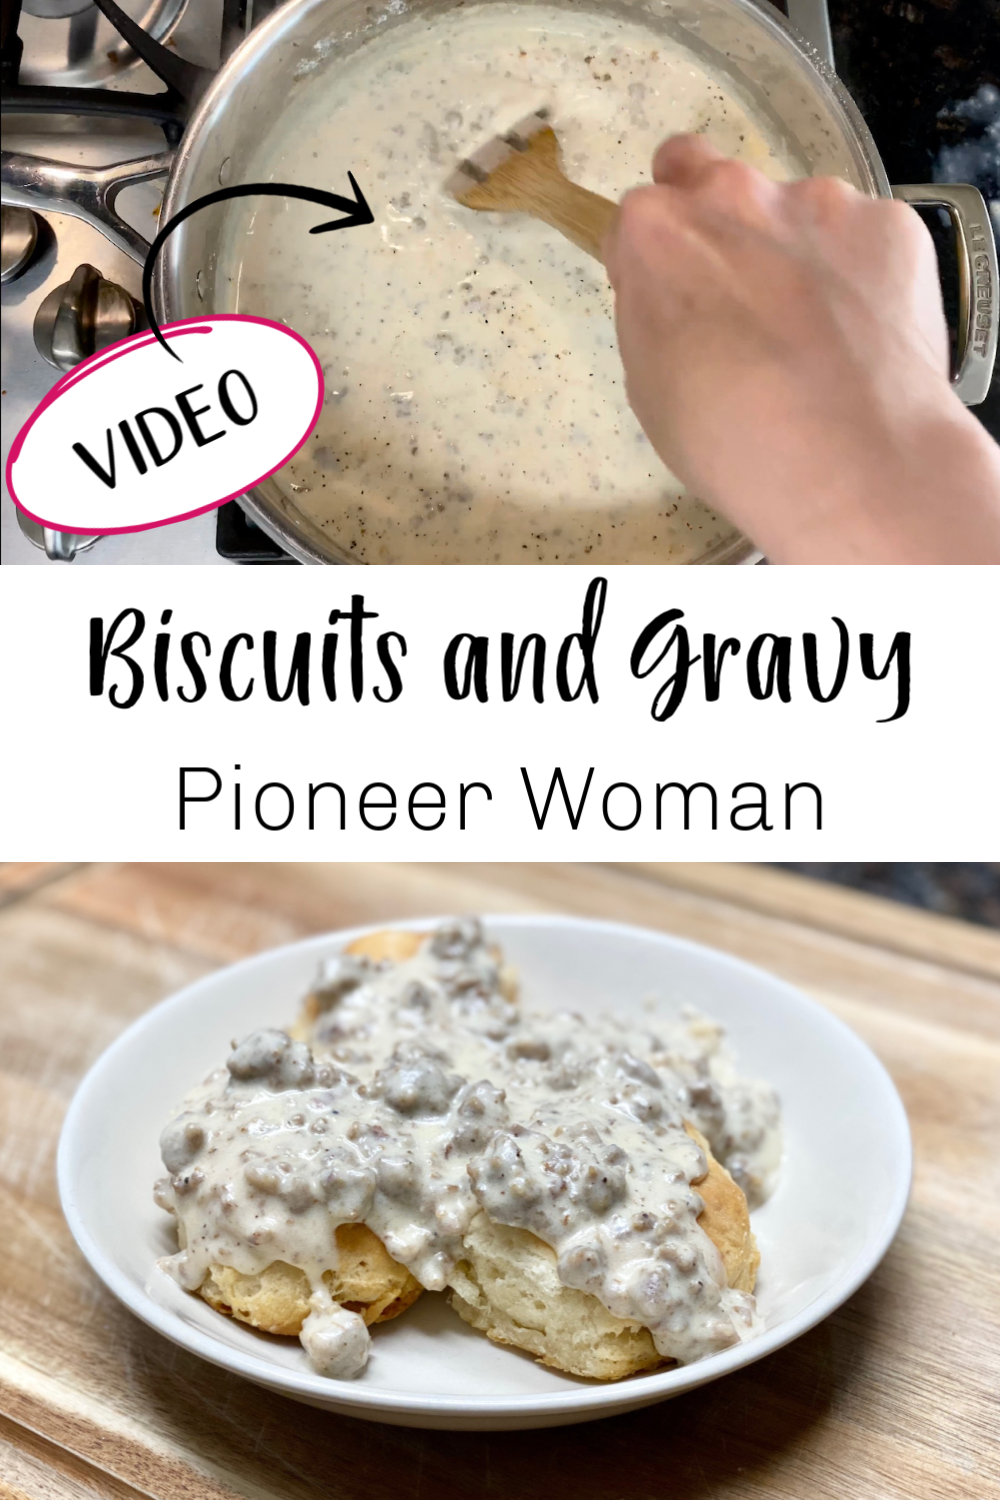 biscuits and gravy recipe breakfast recipes in 2020 biscuits and gravy recipes sausage gravy and biscuits pinterest